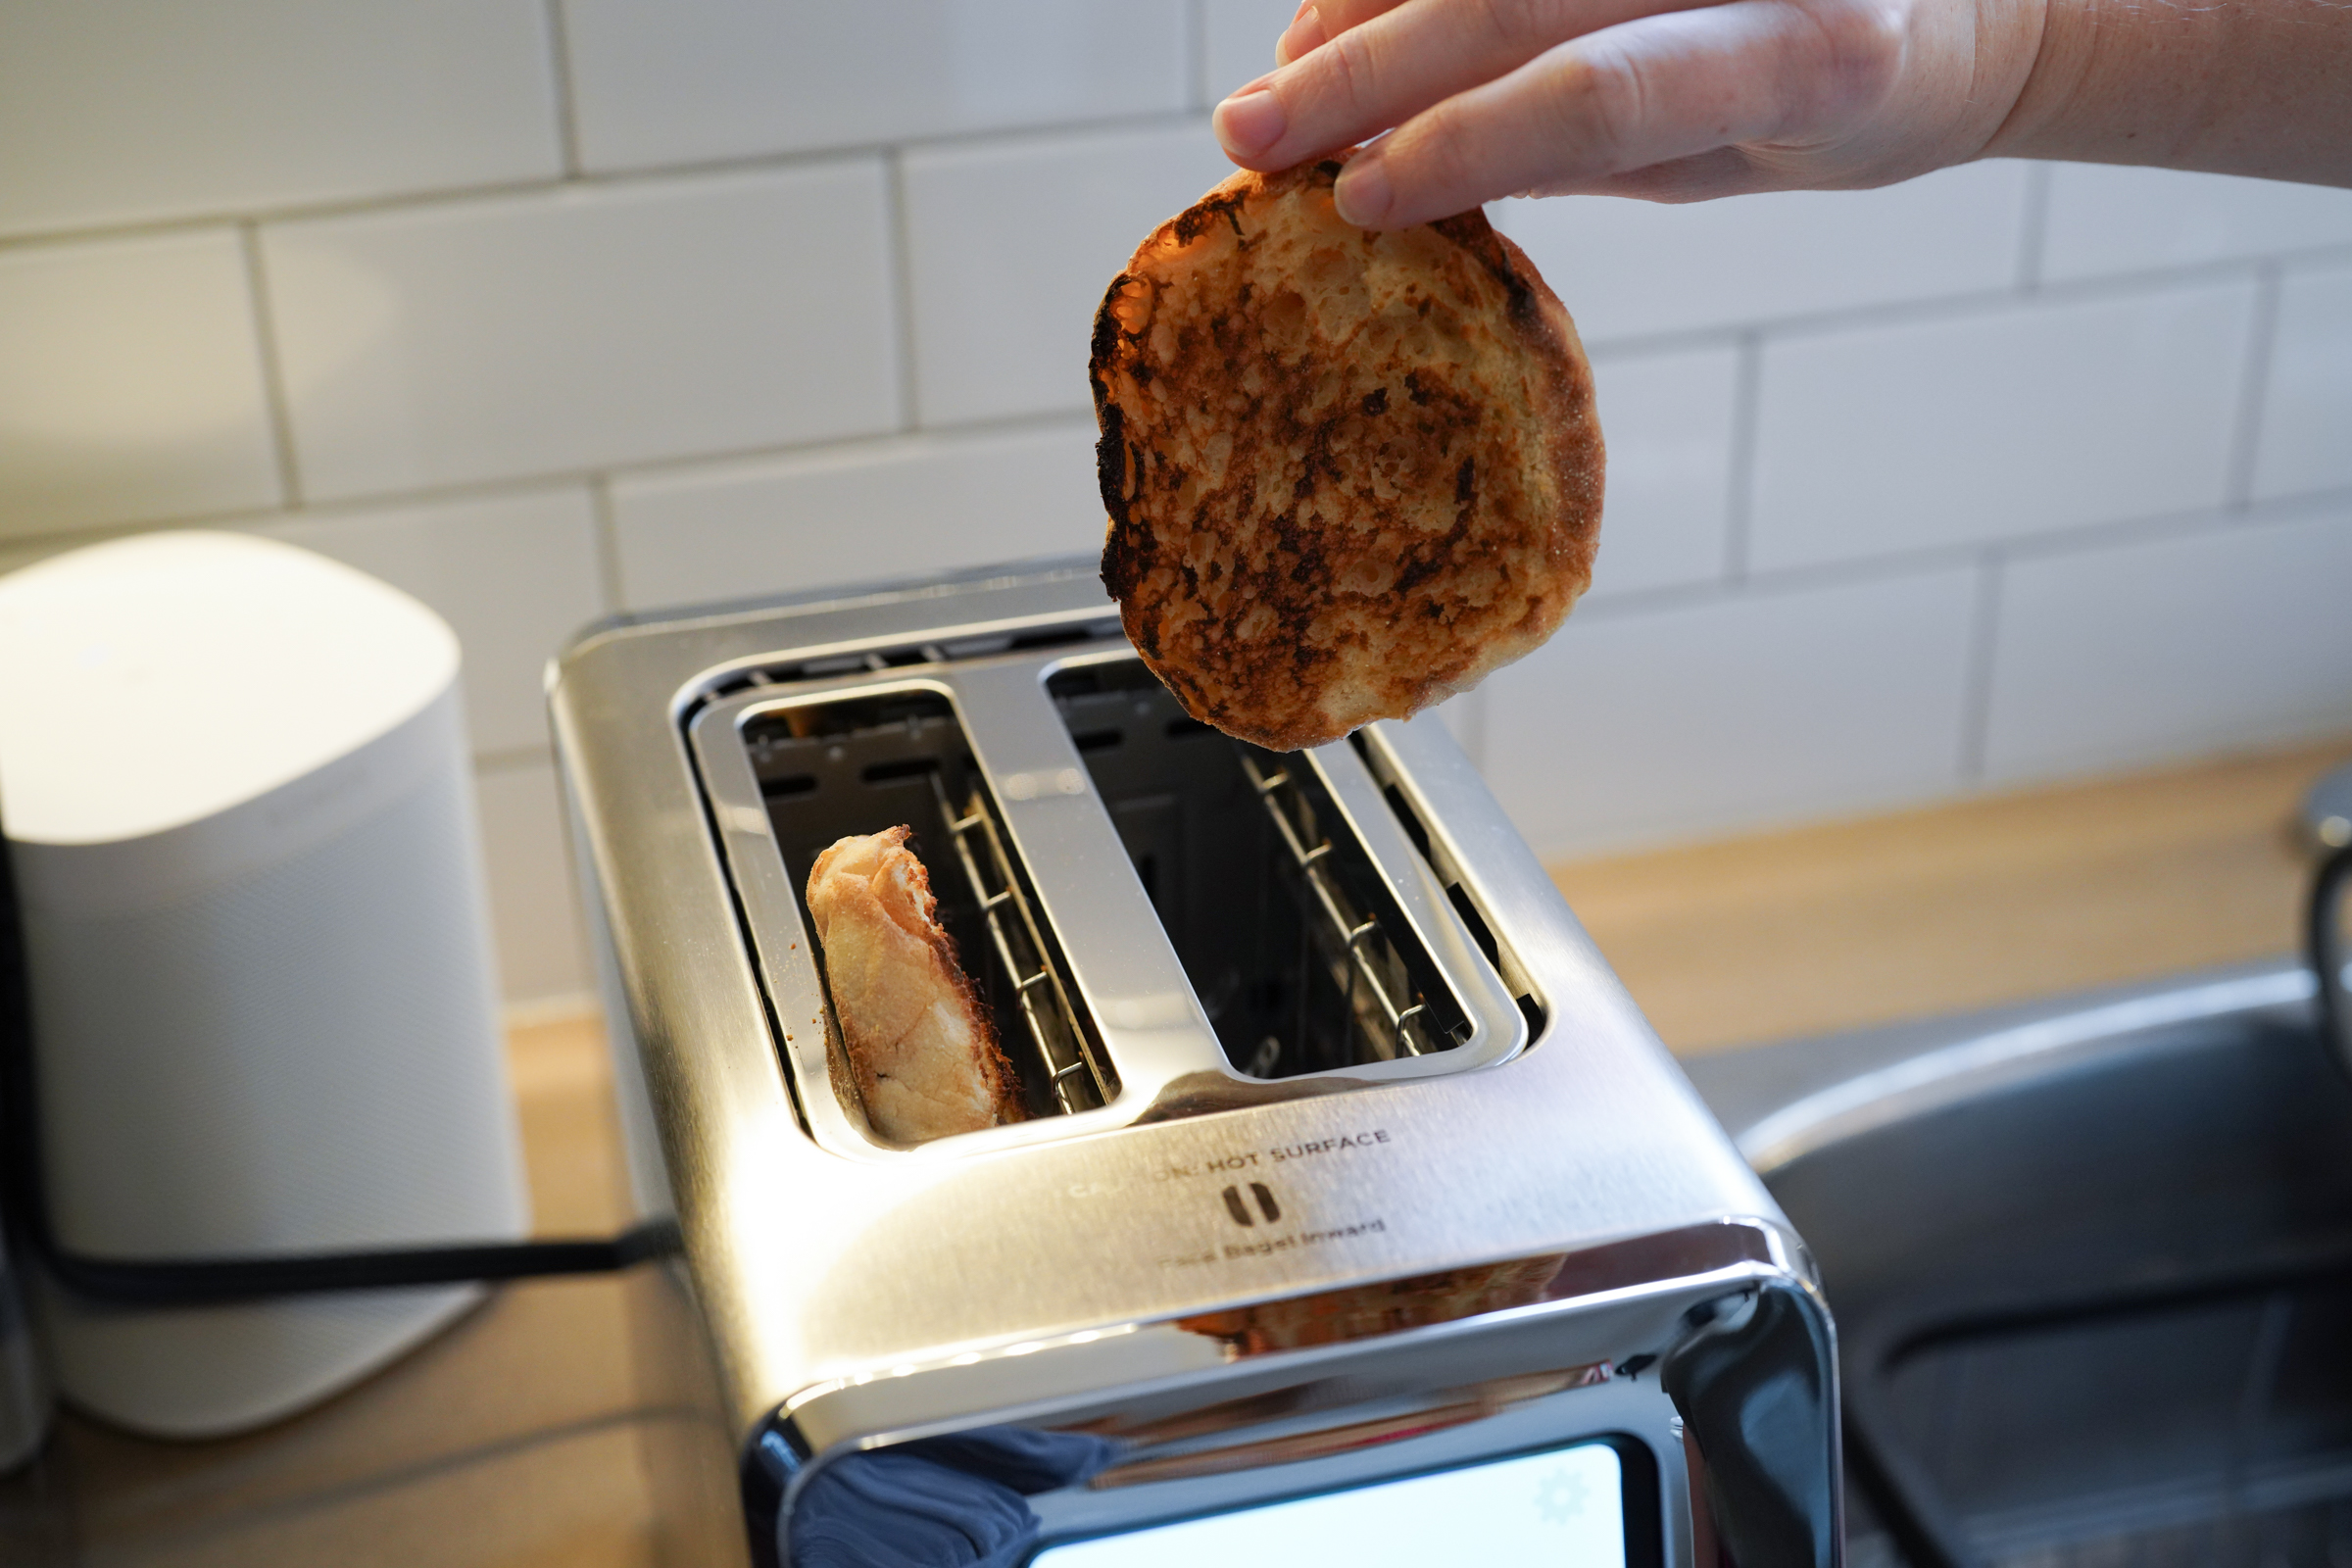 Revolution Cooking's R180 Smart Toaster delivers smarter, faster toasting – for a price 3